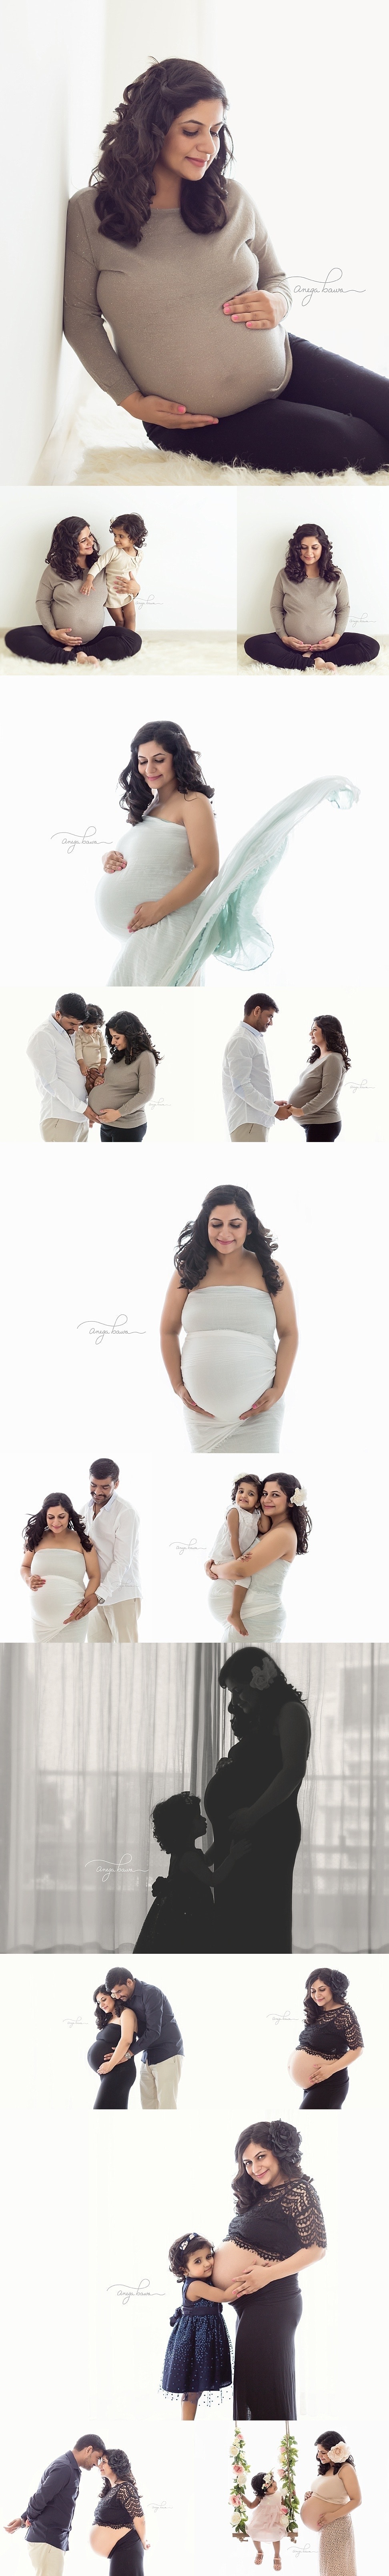 maternity_session_042_with_child_india_pregnancy_photography